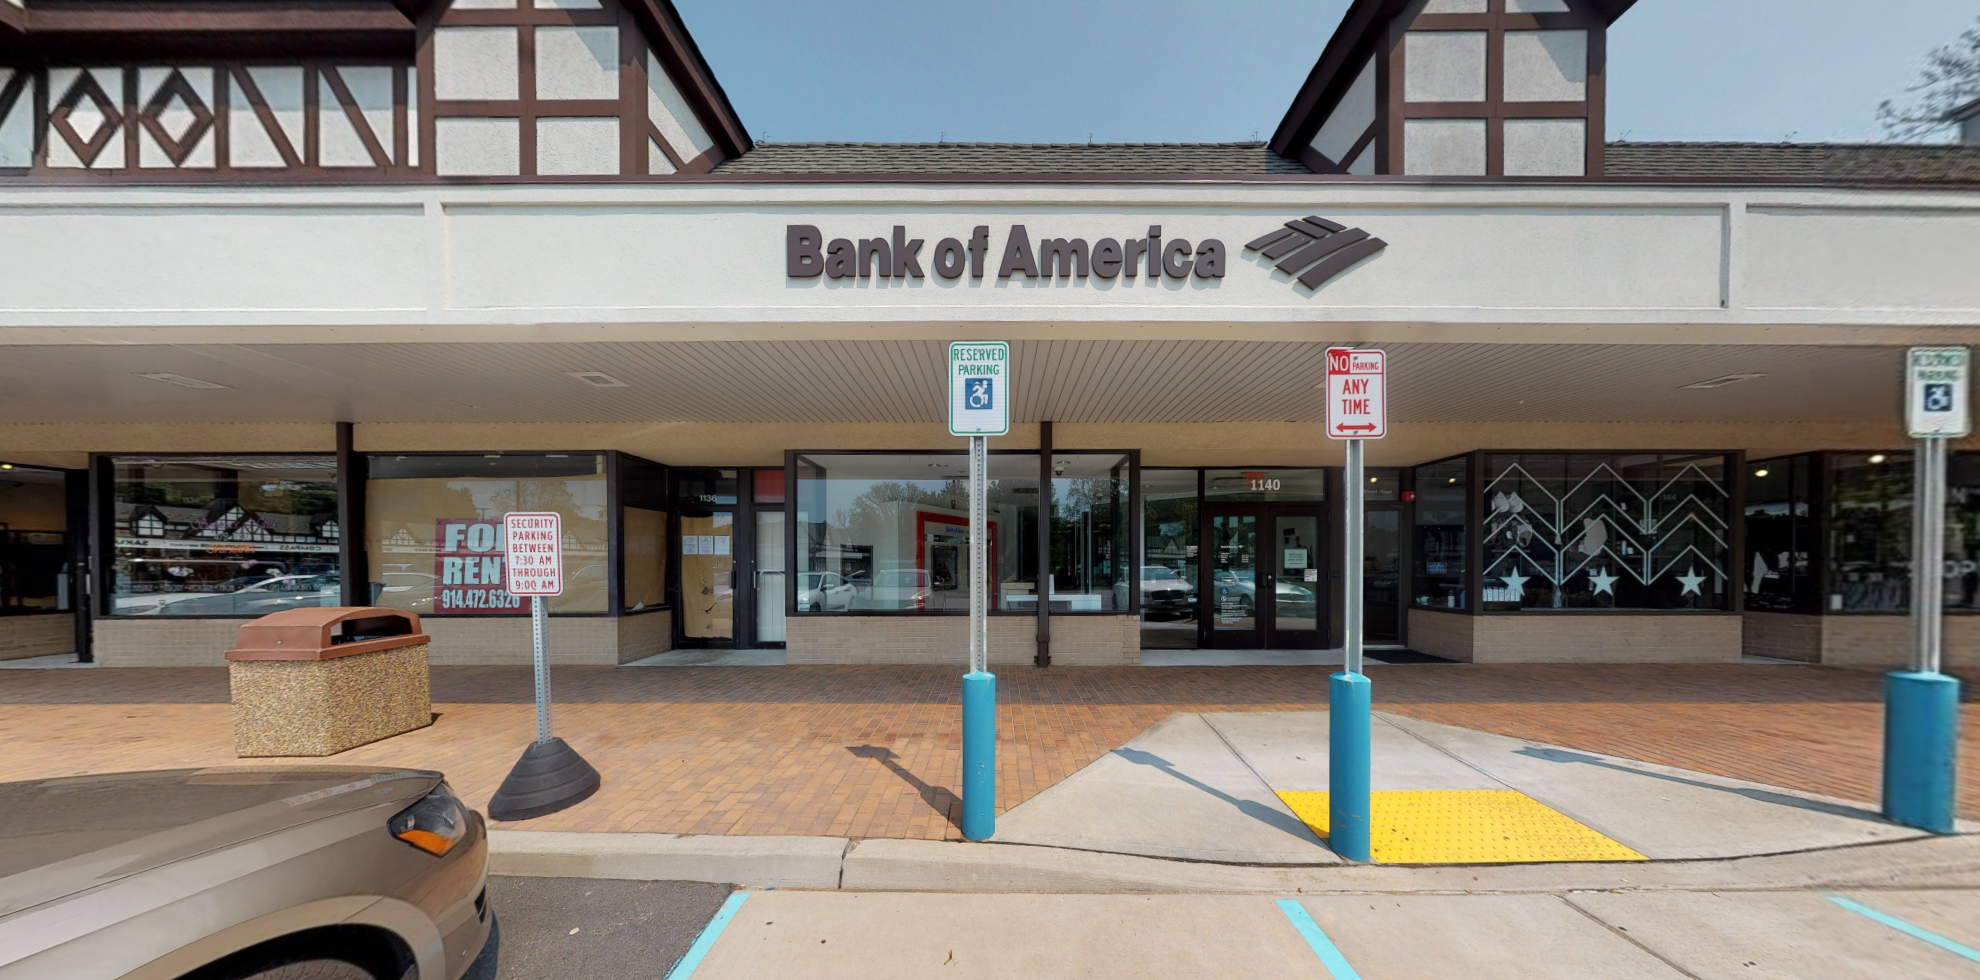 Bank of America financial center with drive-thru ATM | 1140 Wilmot Rd, Scarsdale, NY 10583